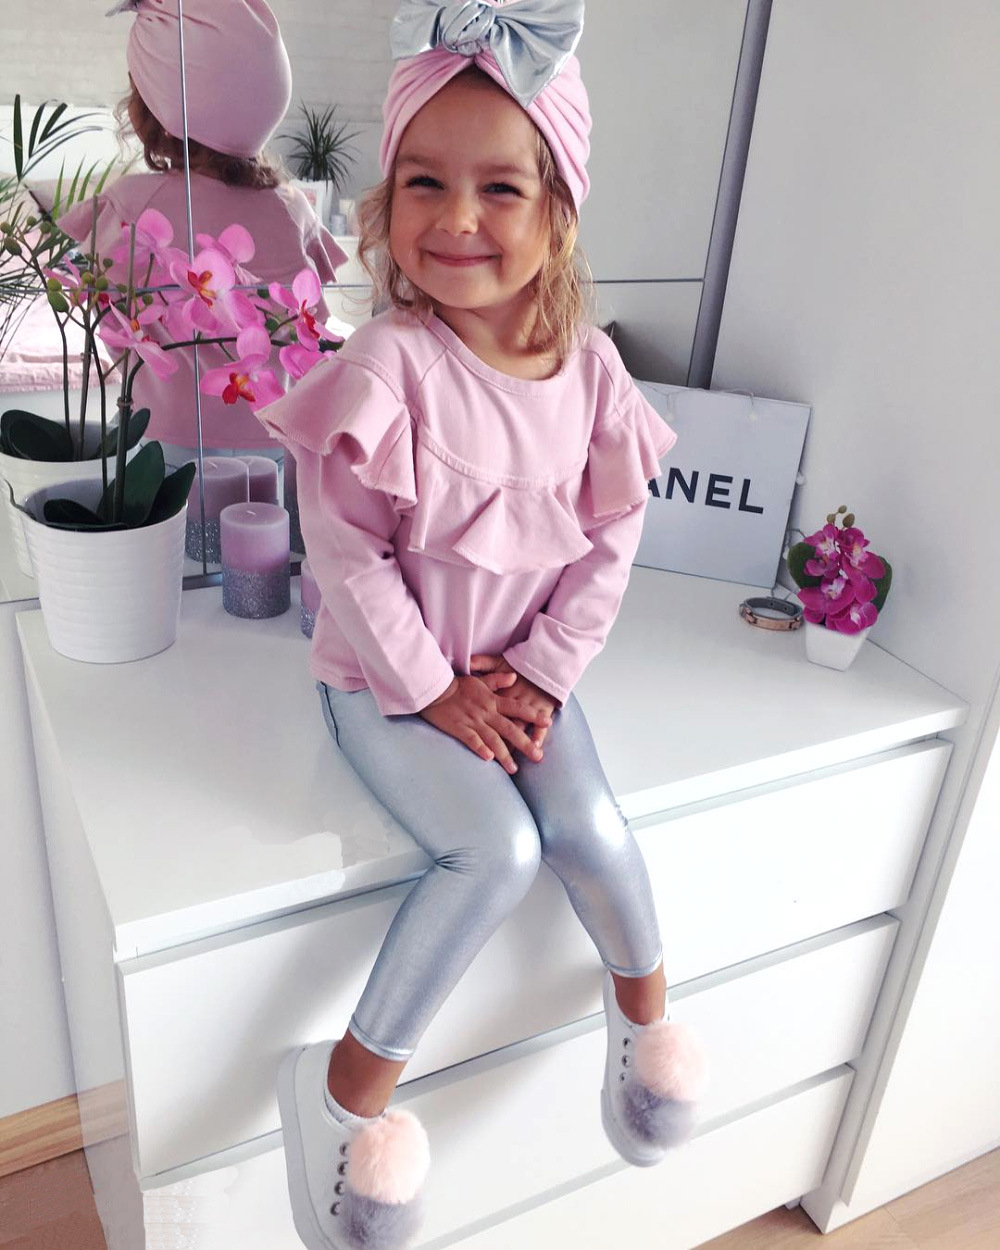 2019 Spring Autumn New child Child Women Garments Units Lengthy Sleeved Pink Tops+Silver Leather-based Pants+Hat Kids's Children Clothes Units woman garments set, children clothes set, clothes units,Low-cost woman garments...